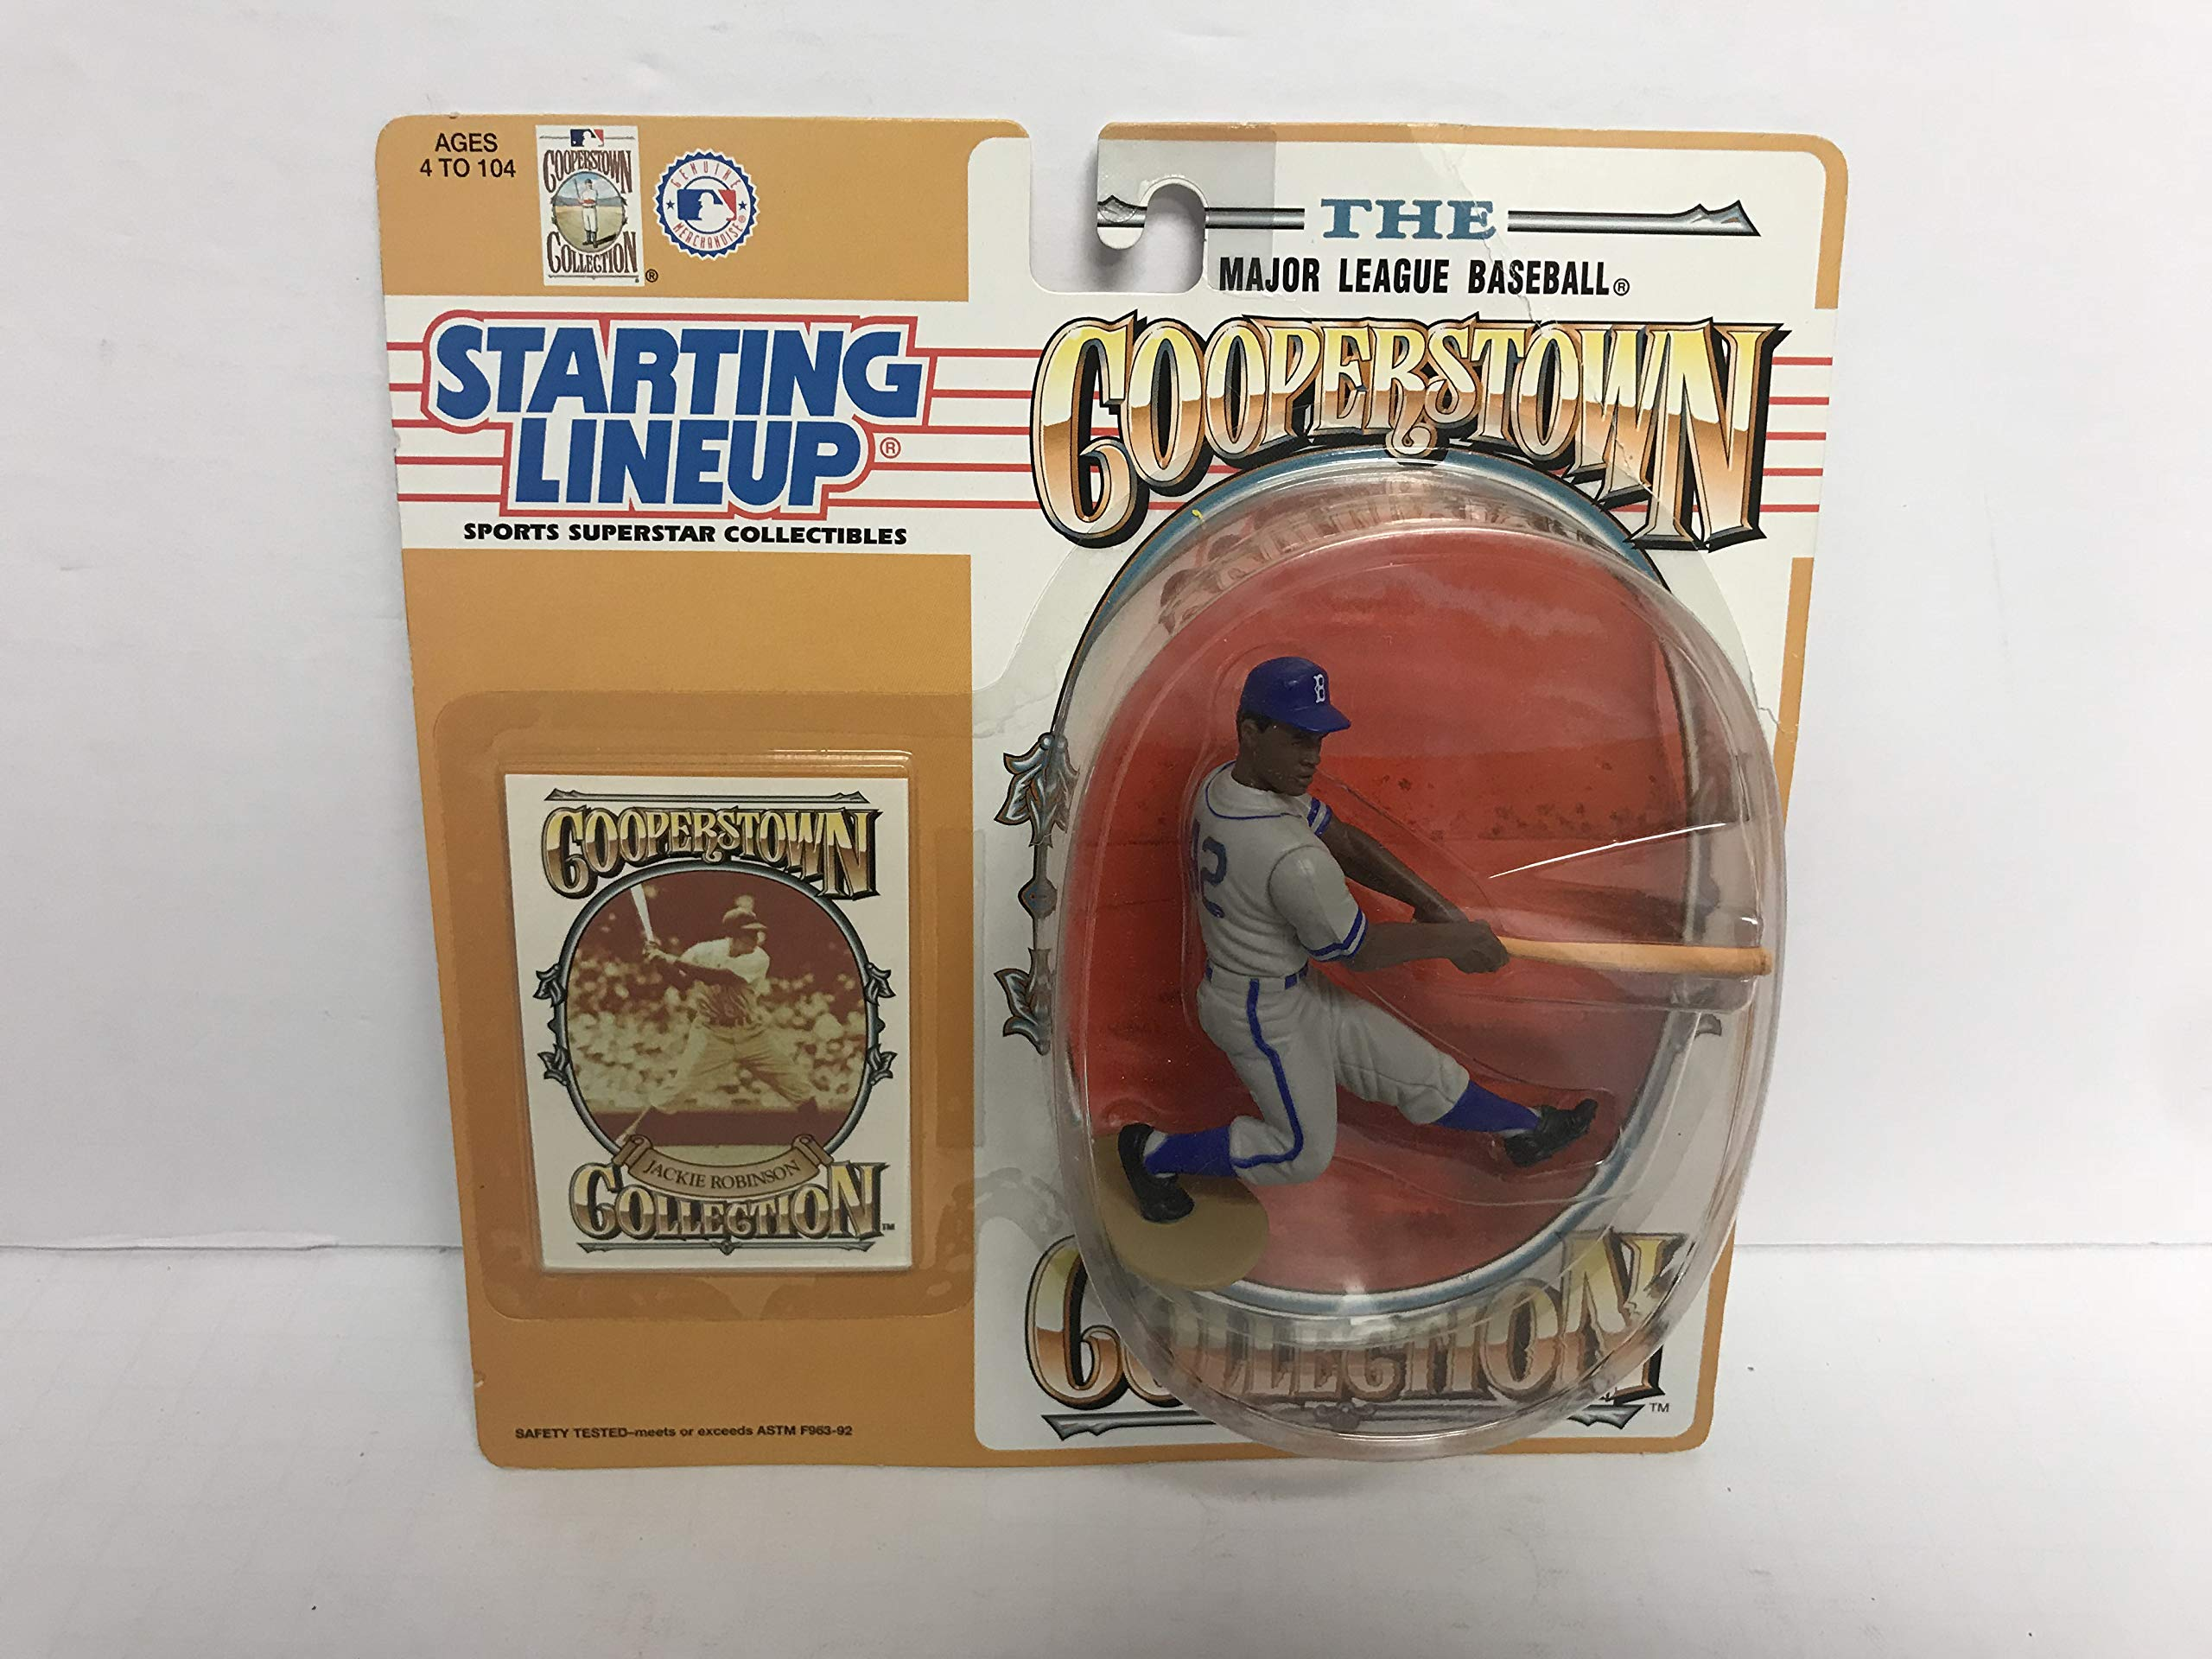 Jackie Robinson Brooklyn Dodgers Collectible Toy Action Figure with Trading Card